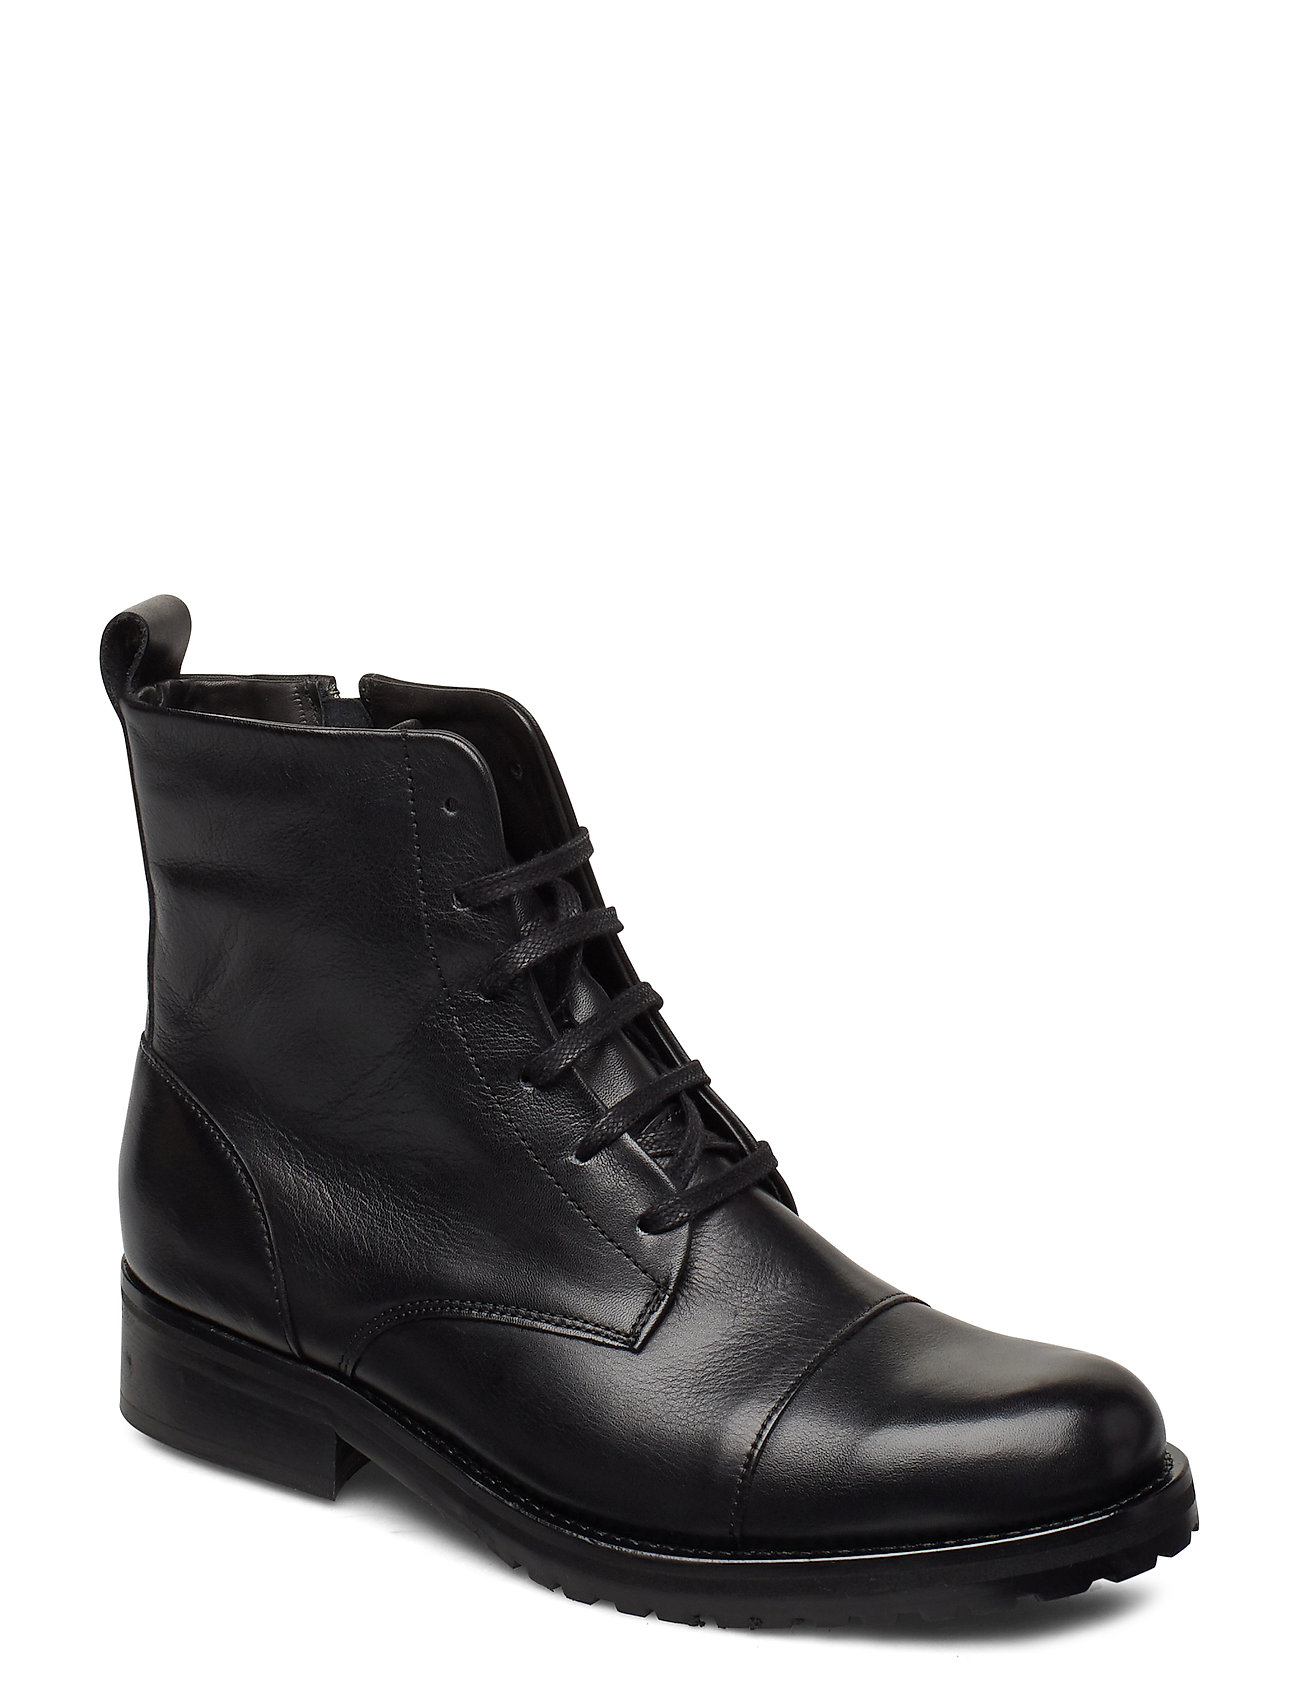 Image of Ave Lace Up Boot - Black Shoes Boots Ankle Boots Ankle Boot - Flat Sort Royal RepubliQ (3429250223)